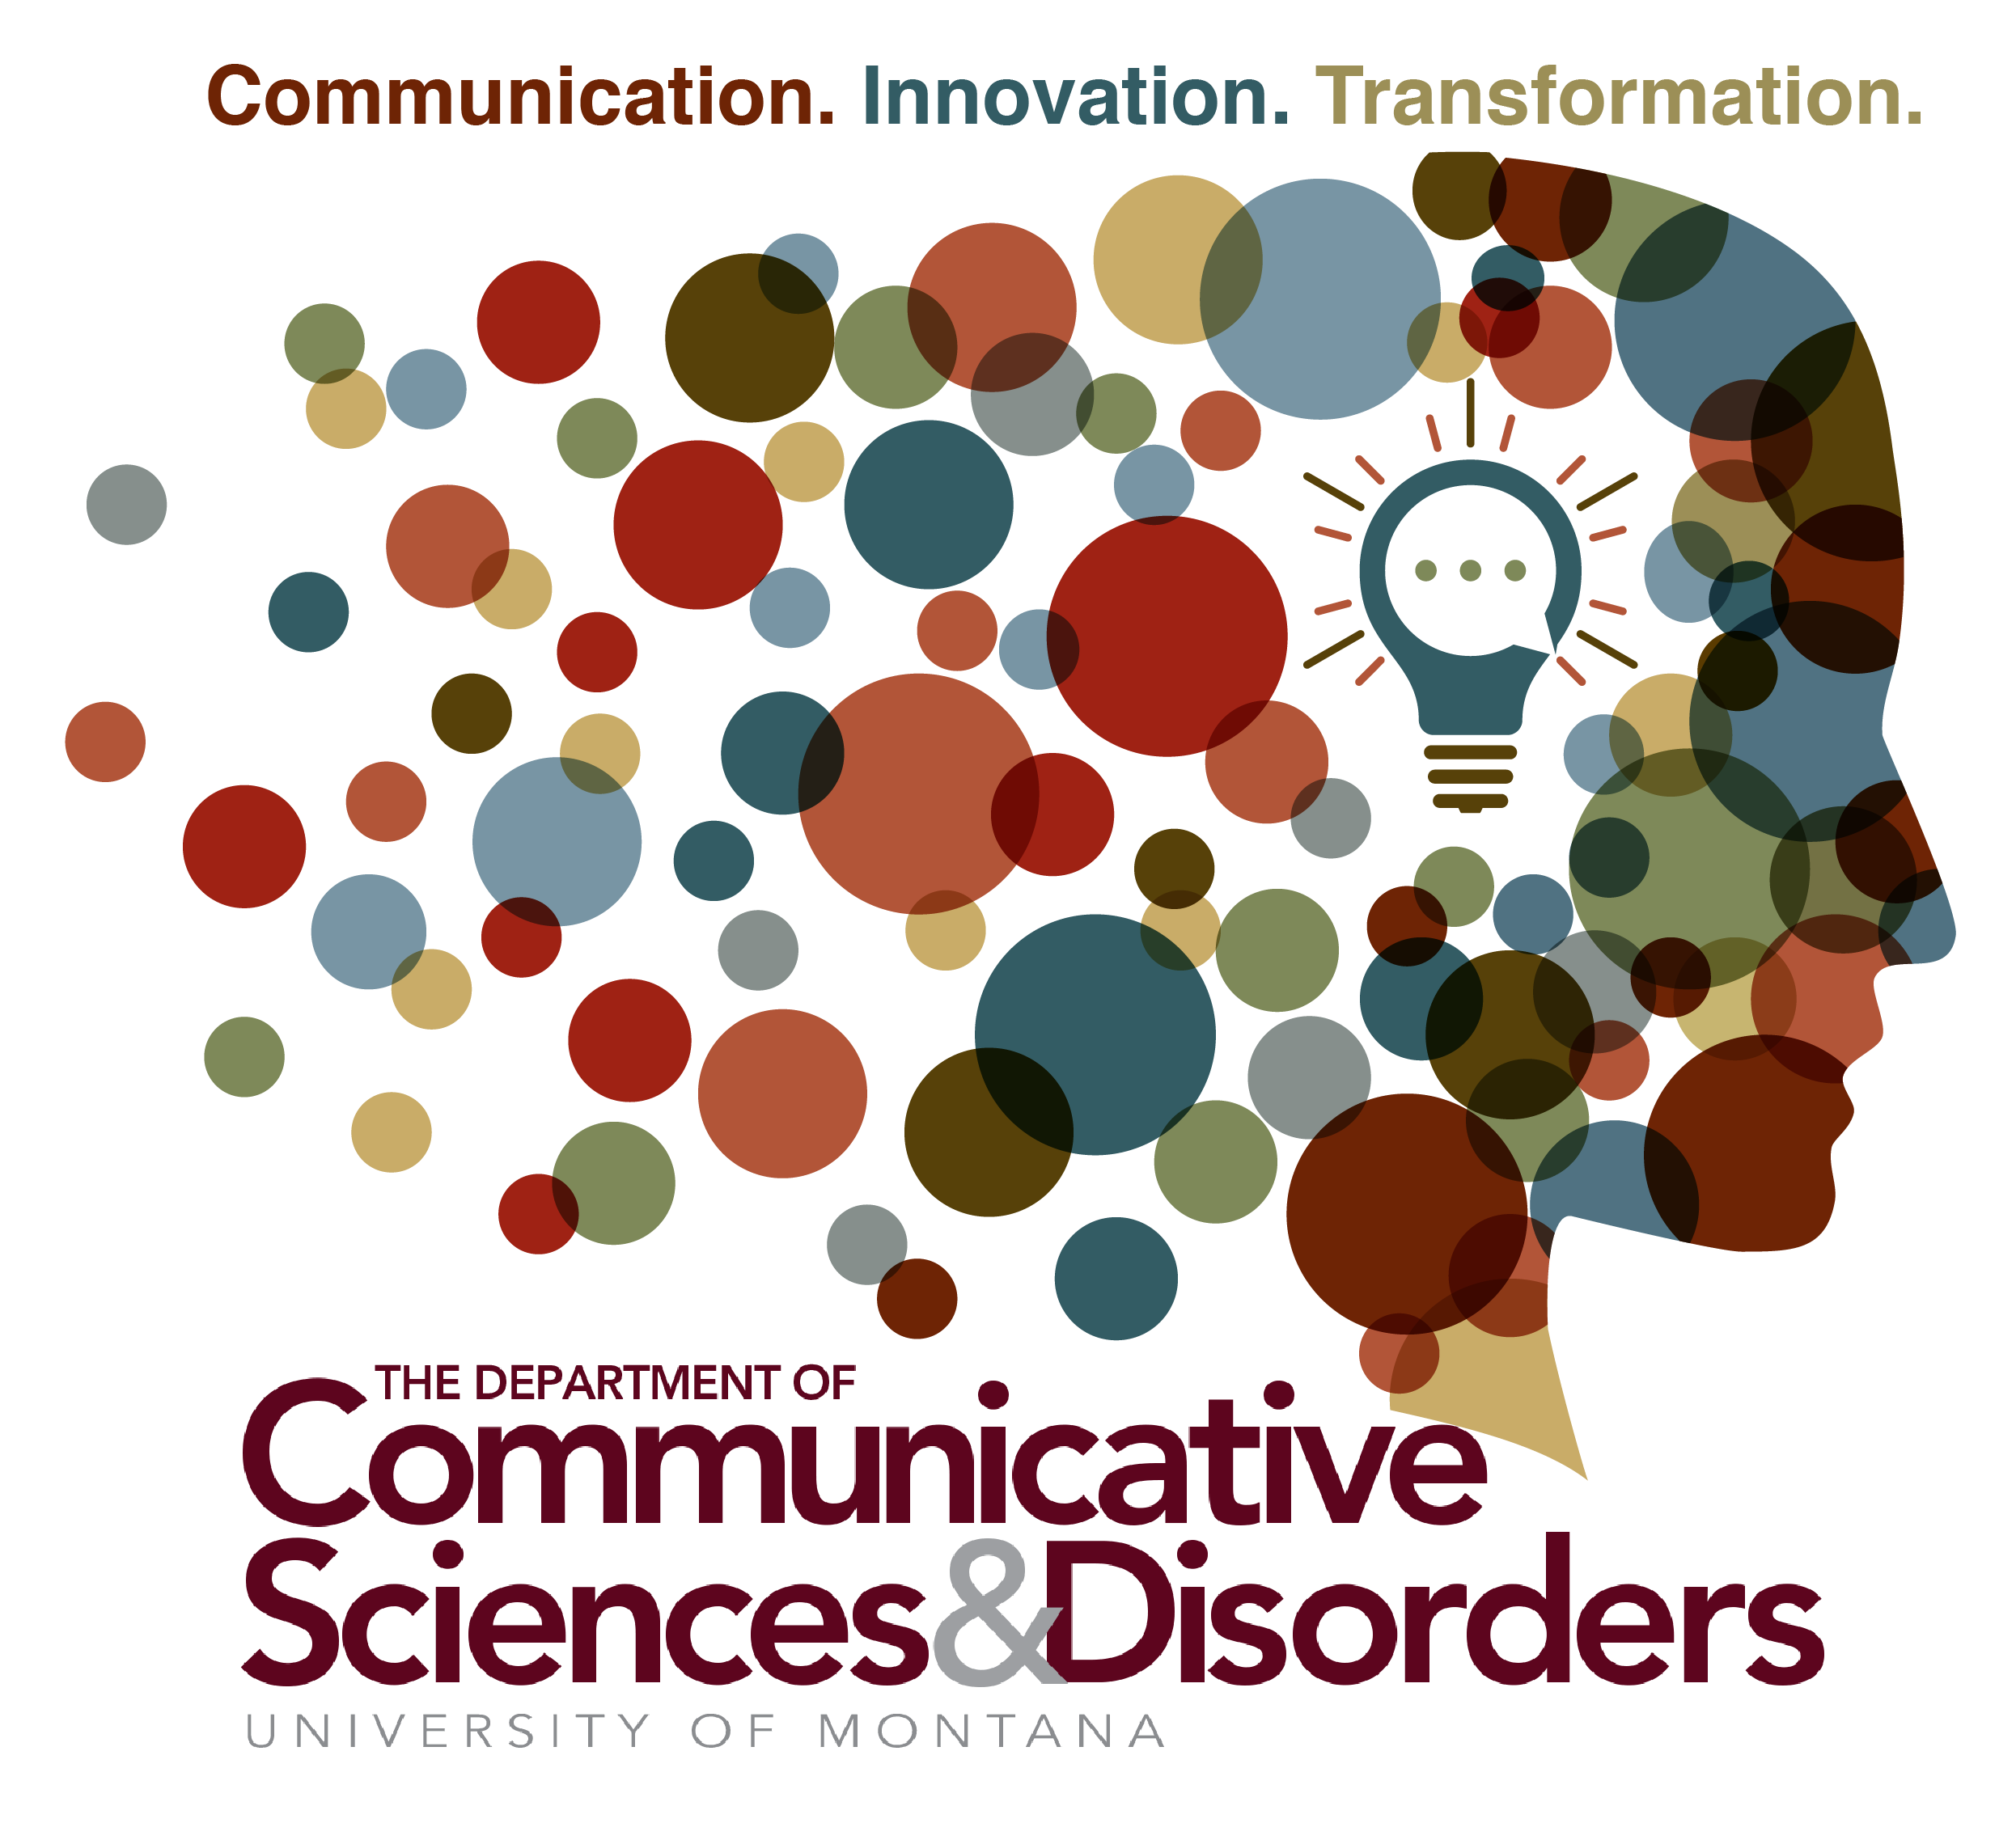 Communication vector education. Communicative sciences and disorders